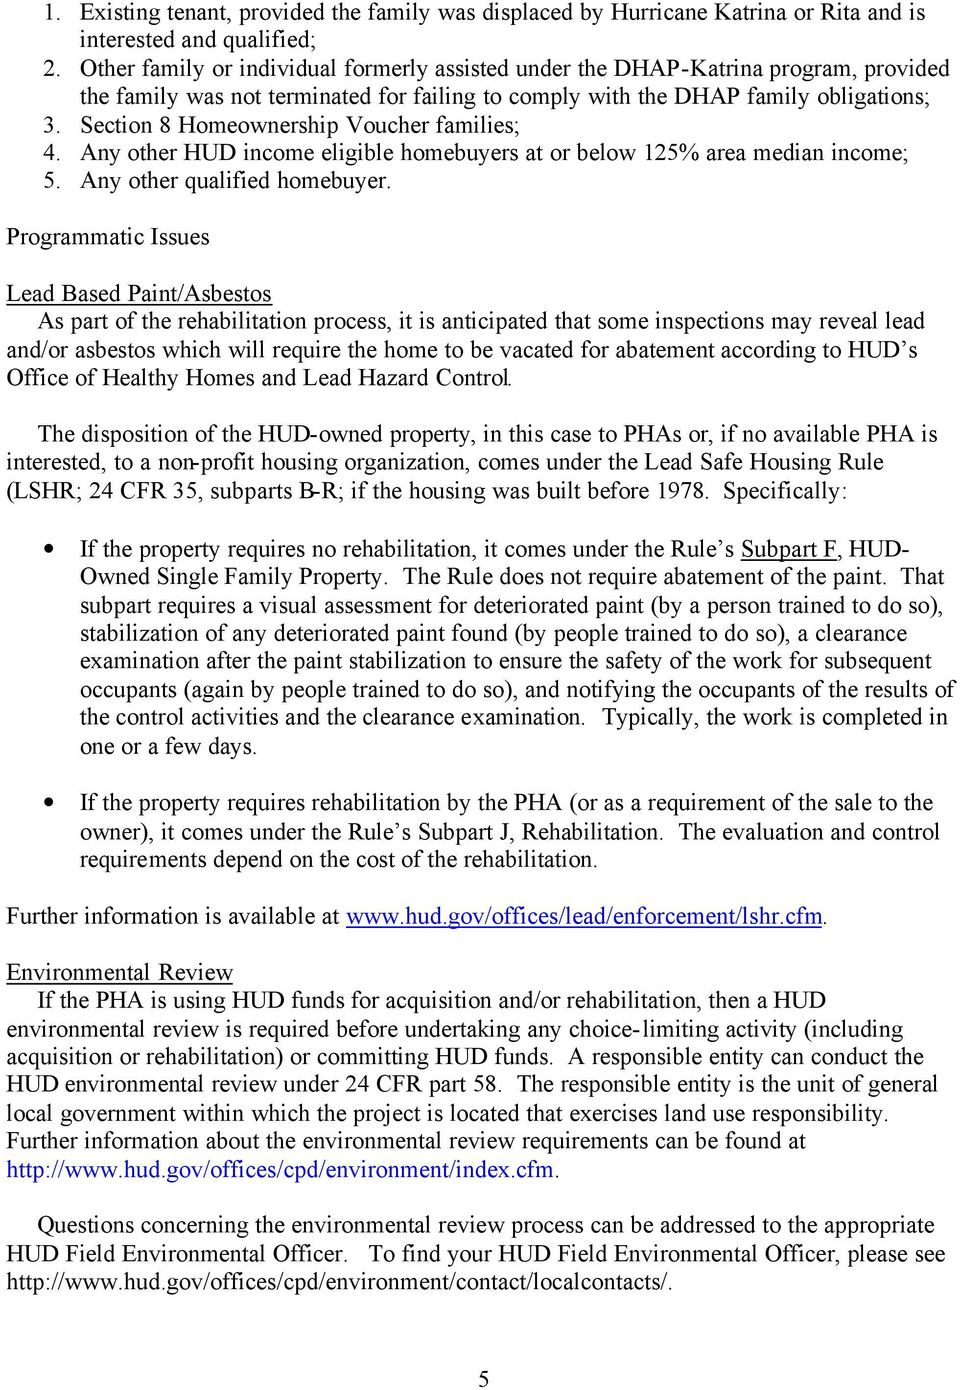 Subject: Revised Information and Procedures for PHAs to